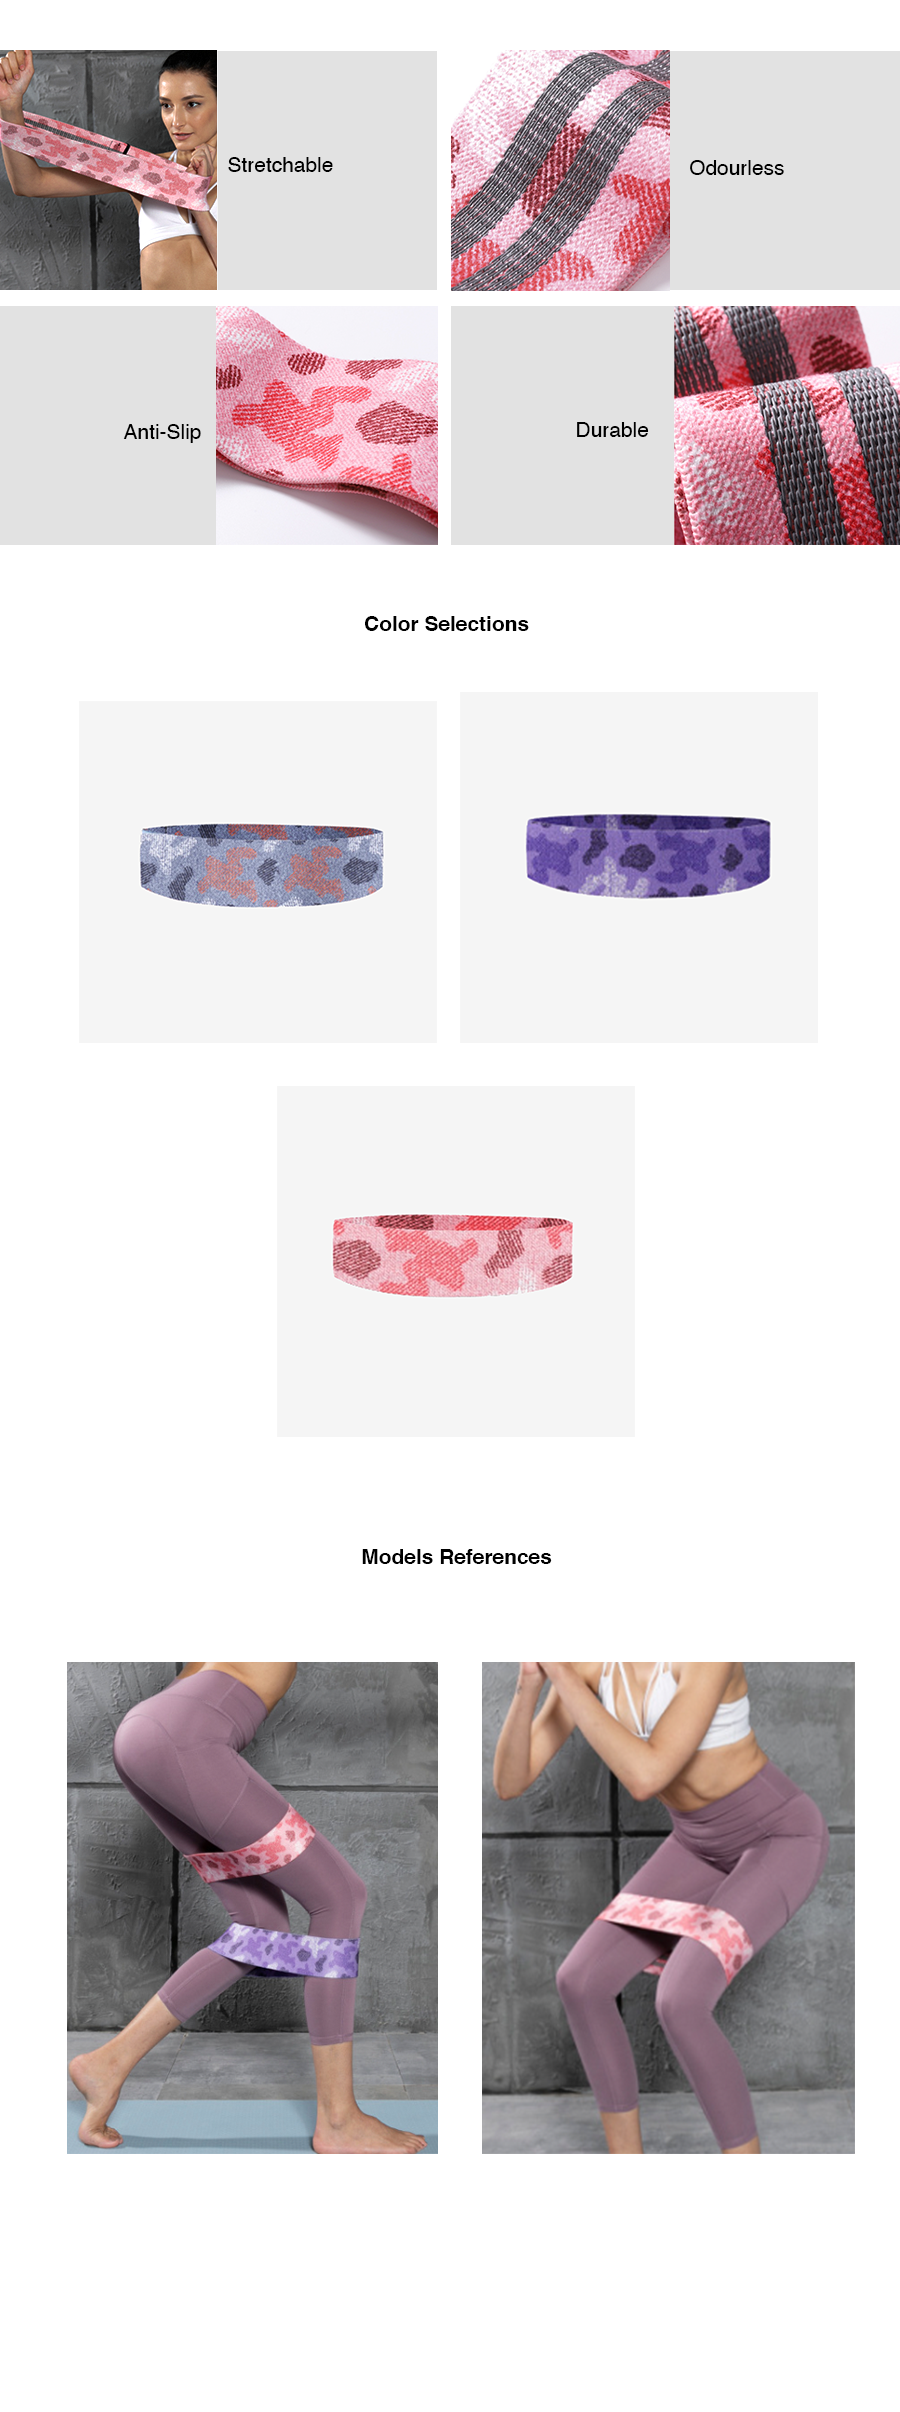 Camouflage Non-Rubber Resistance Band